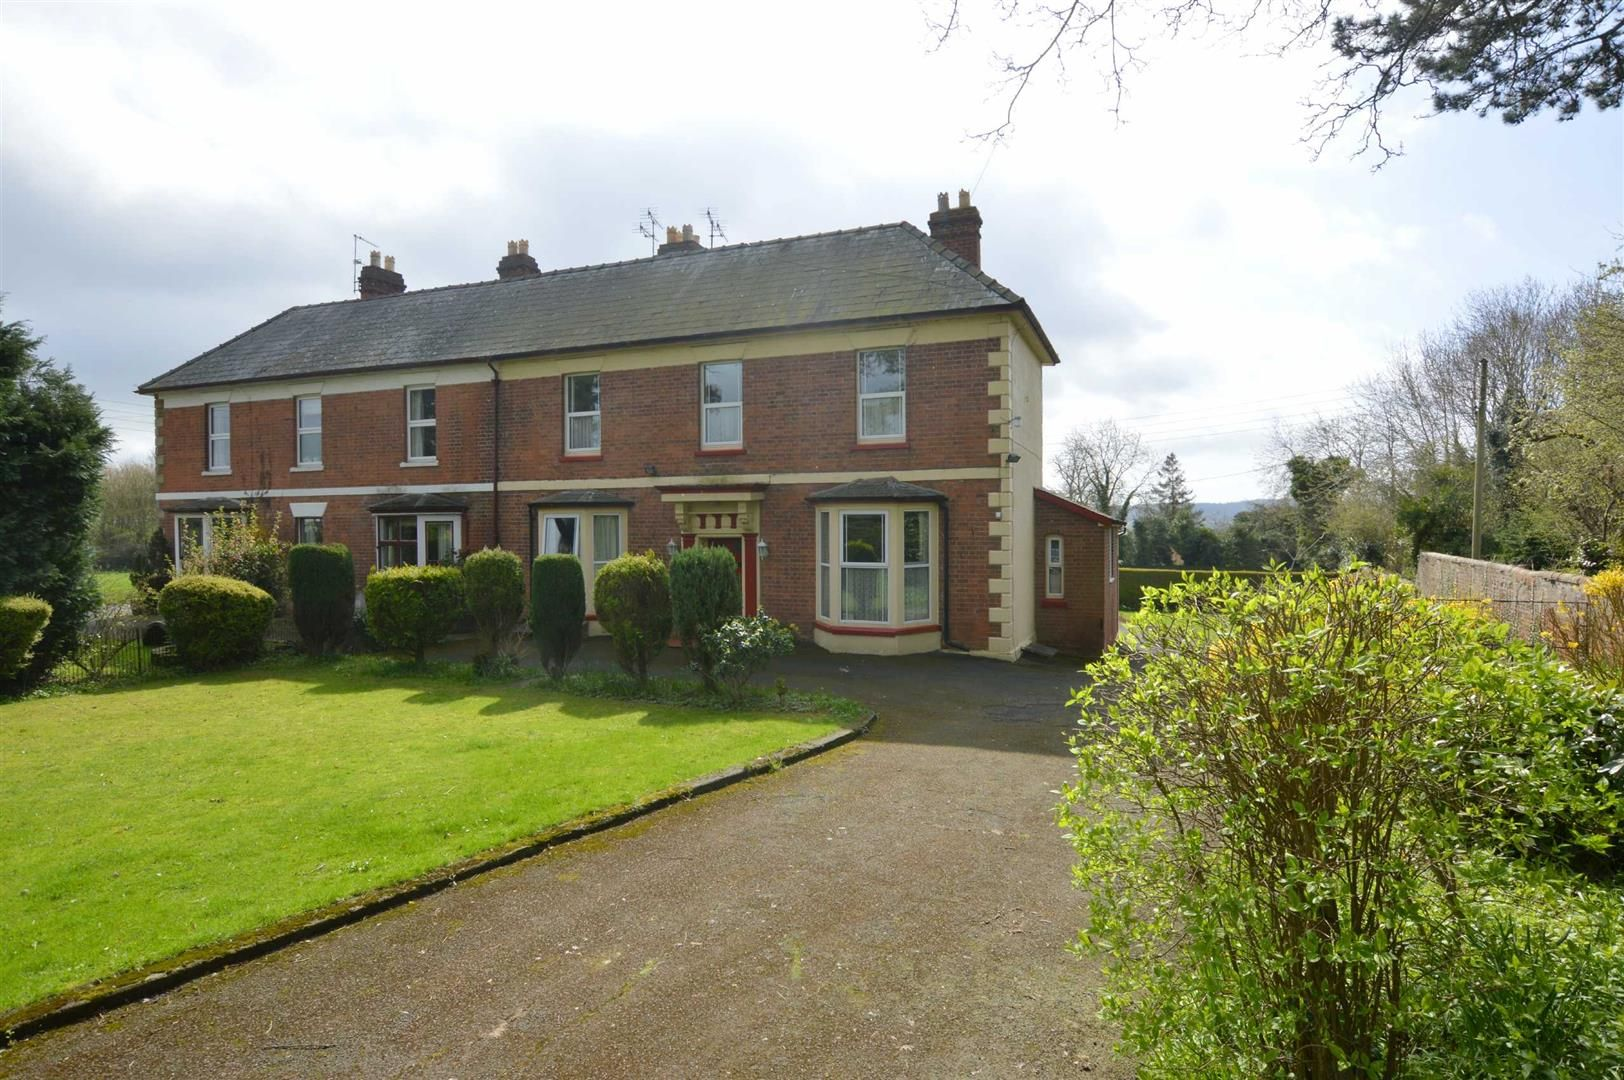 6 bed semi-detached for sale in Leominster 1